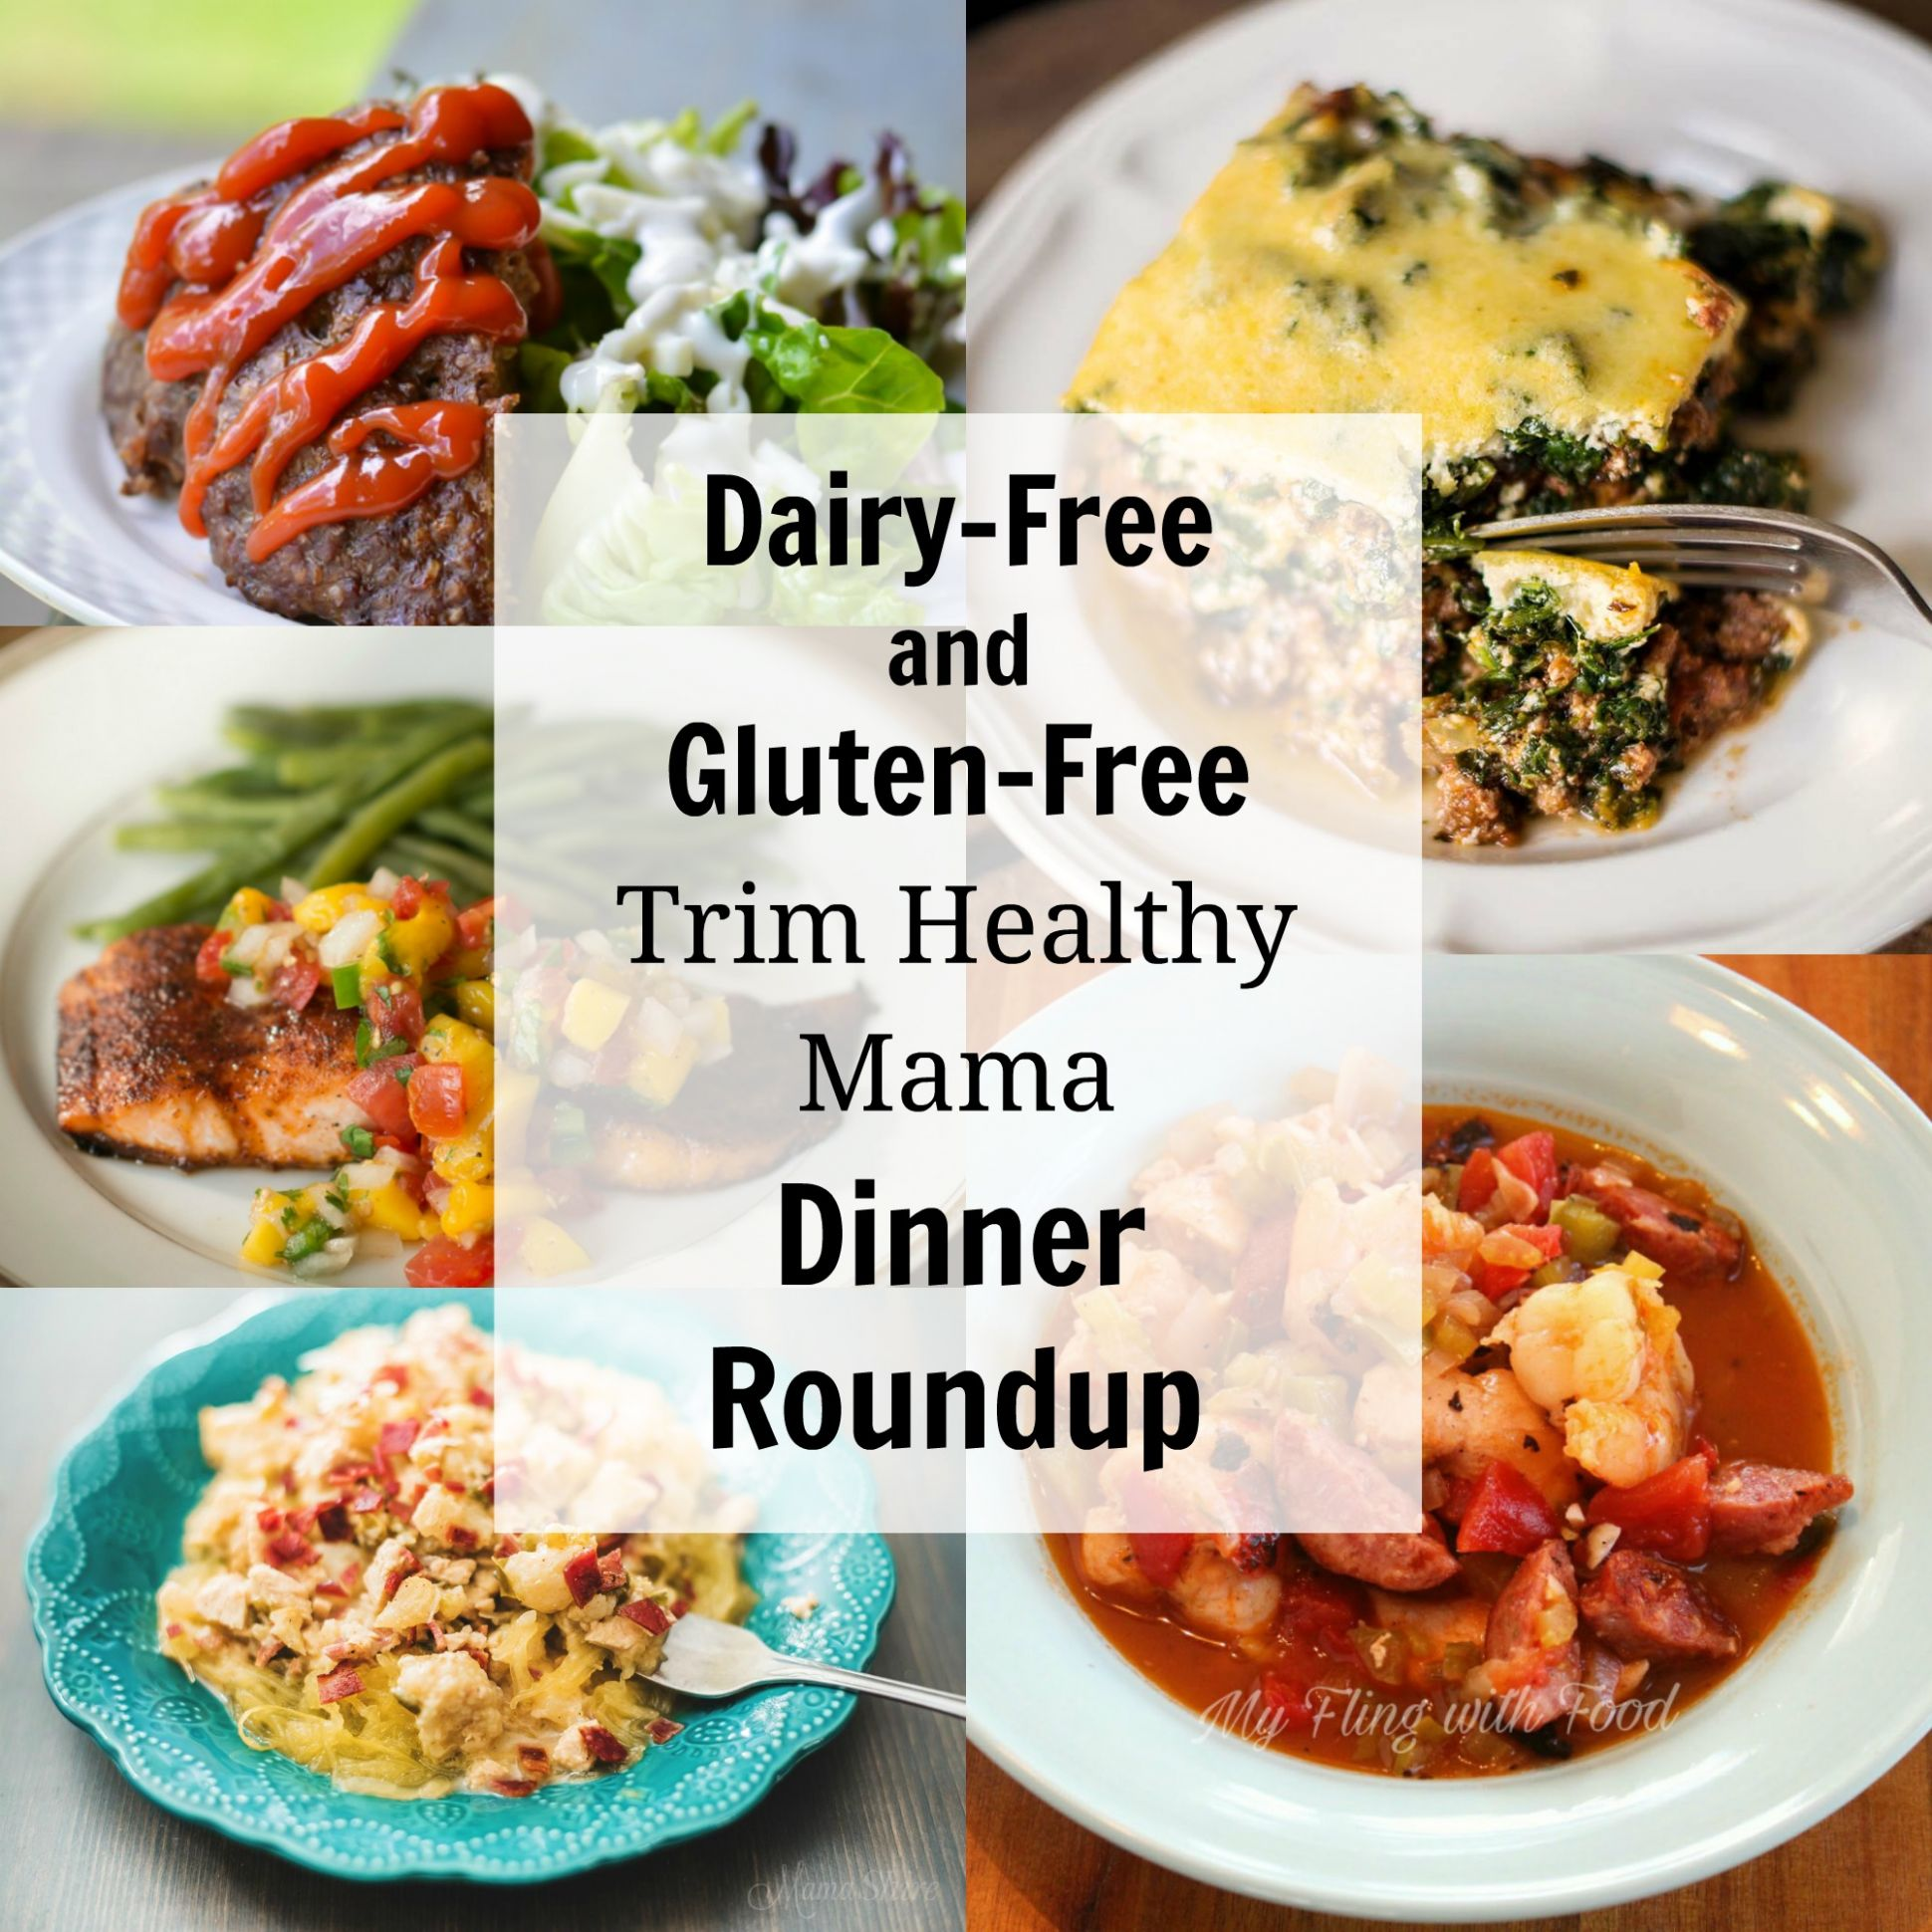 Dairy-Free and Gluten-Free Trim Healthy Mama Dinners - MamaShire - Easy Recipes Gluten Free Dairy Free